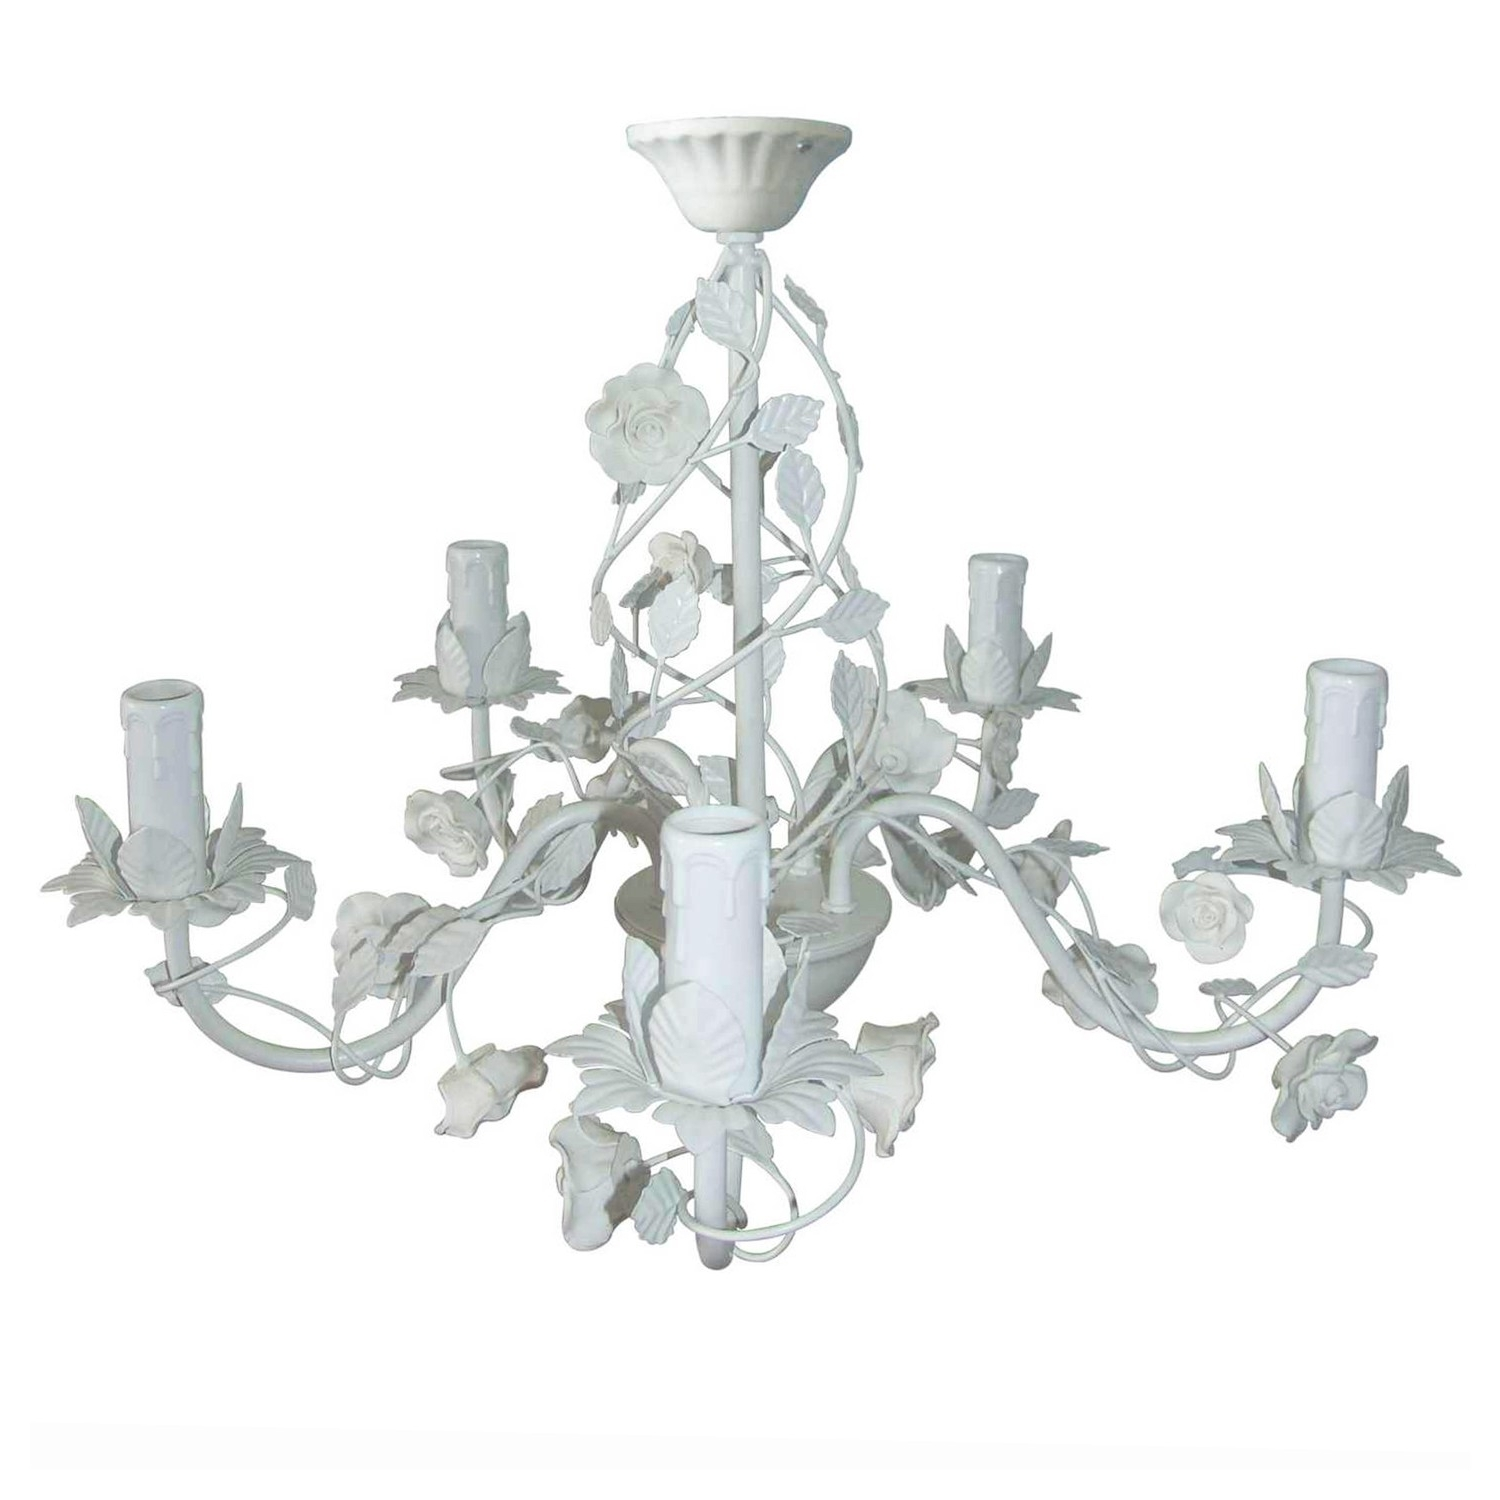 Trendy This Cream Rose 5 Arm Chandelier Is A Beautiful Light Fixture In In Cream Chandelier Lights (View 13 of 15)